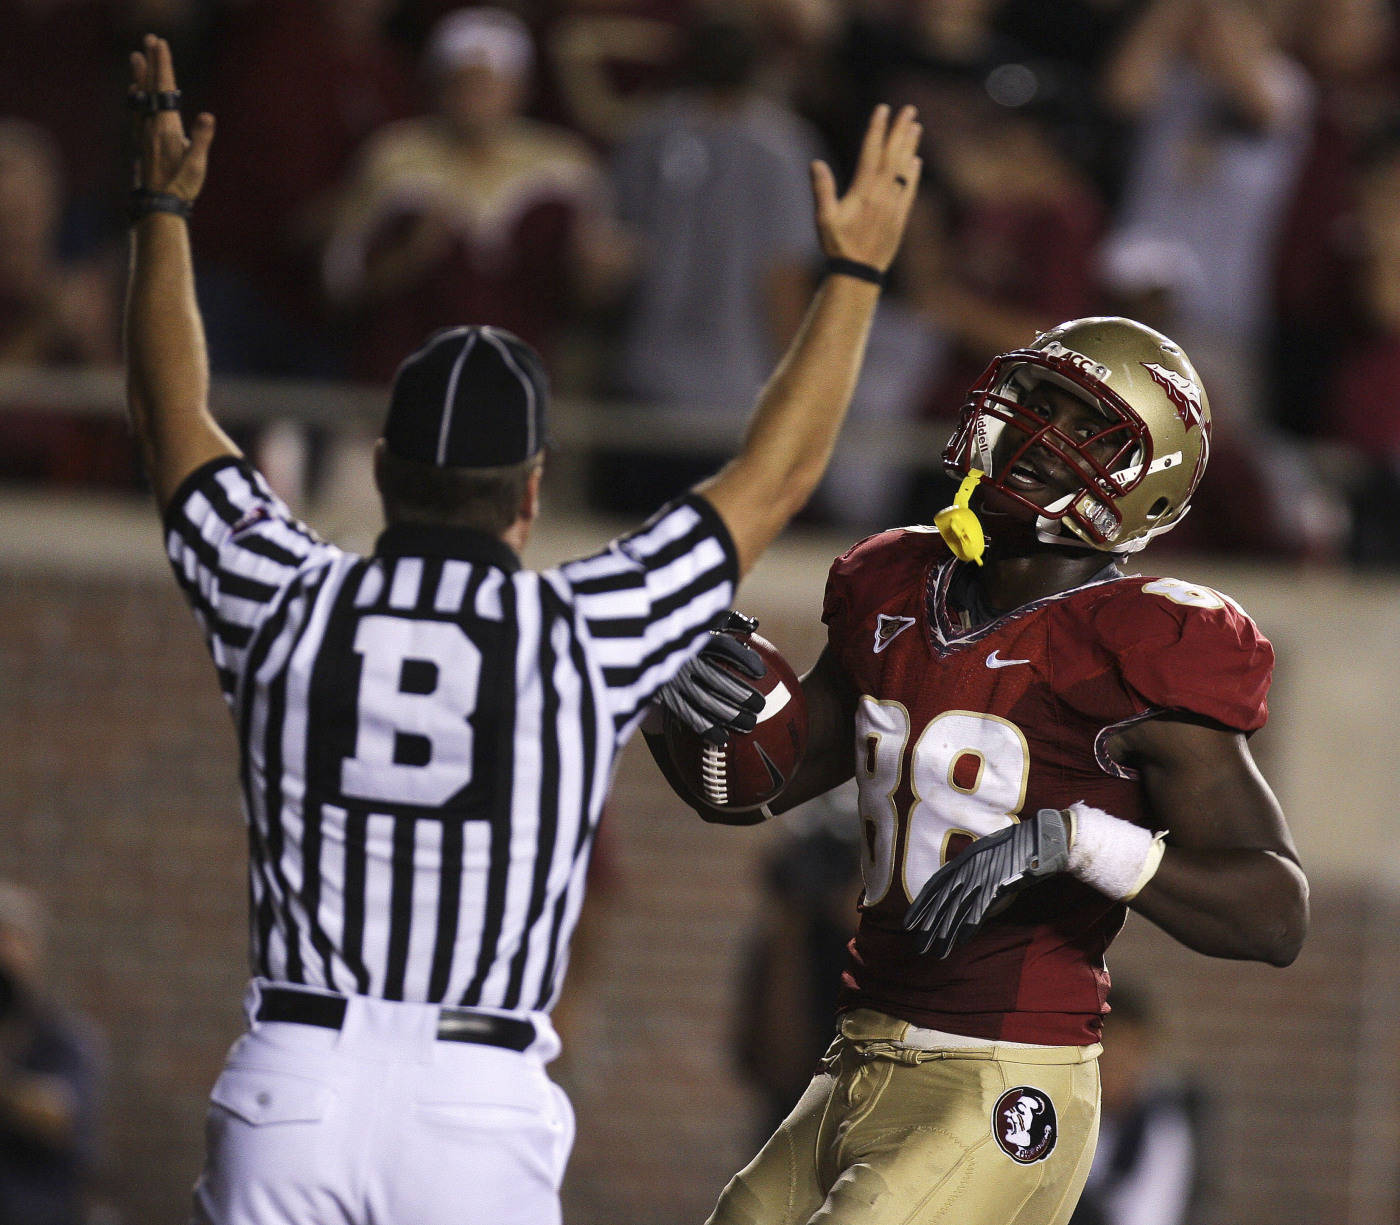 Florida State tight end Beau Reliford scores a first-quarter touchdown during an NCAA college football game against Georgia Tech, Saturday, Oct. 10, 2009, in Tallahassee, Fla.